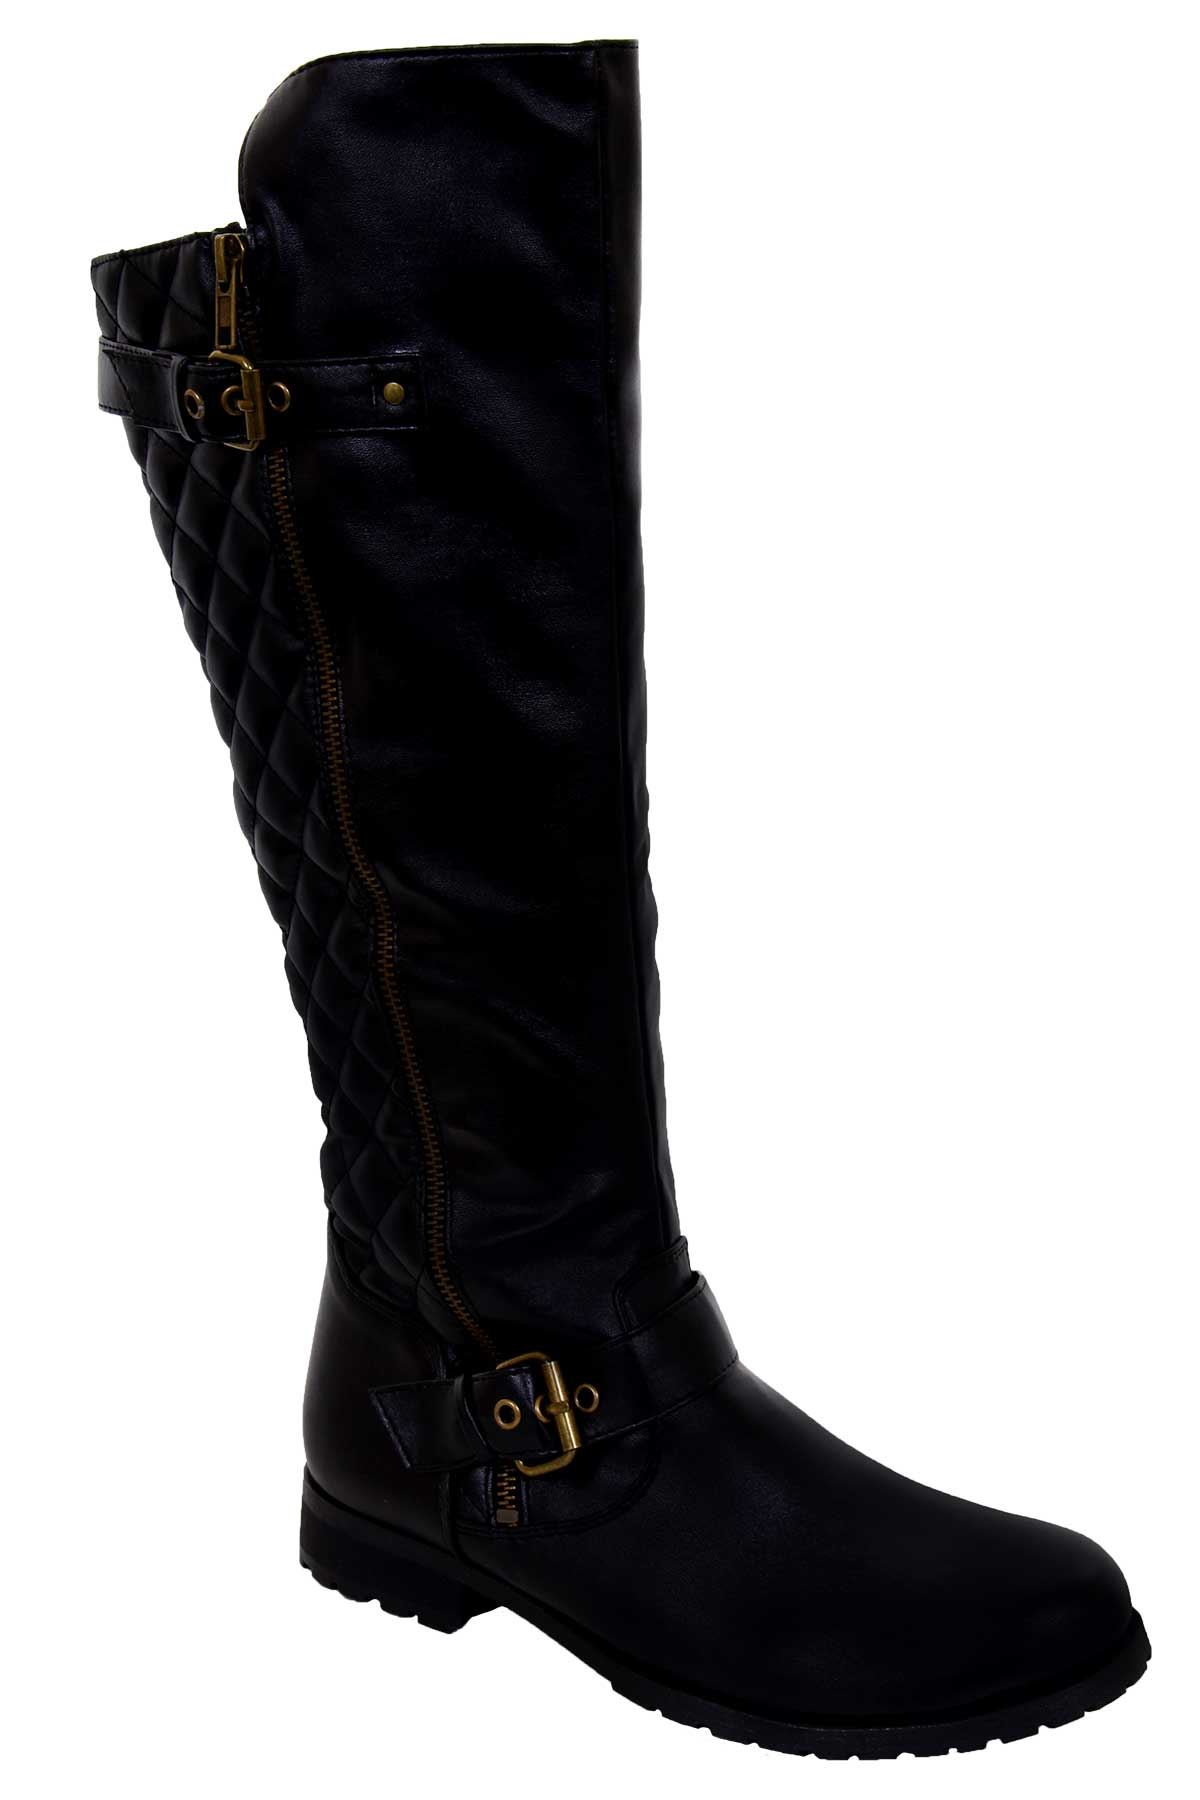 knee high quilted low heel black pu leather s